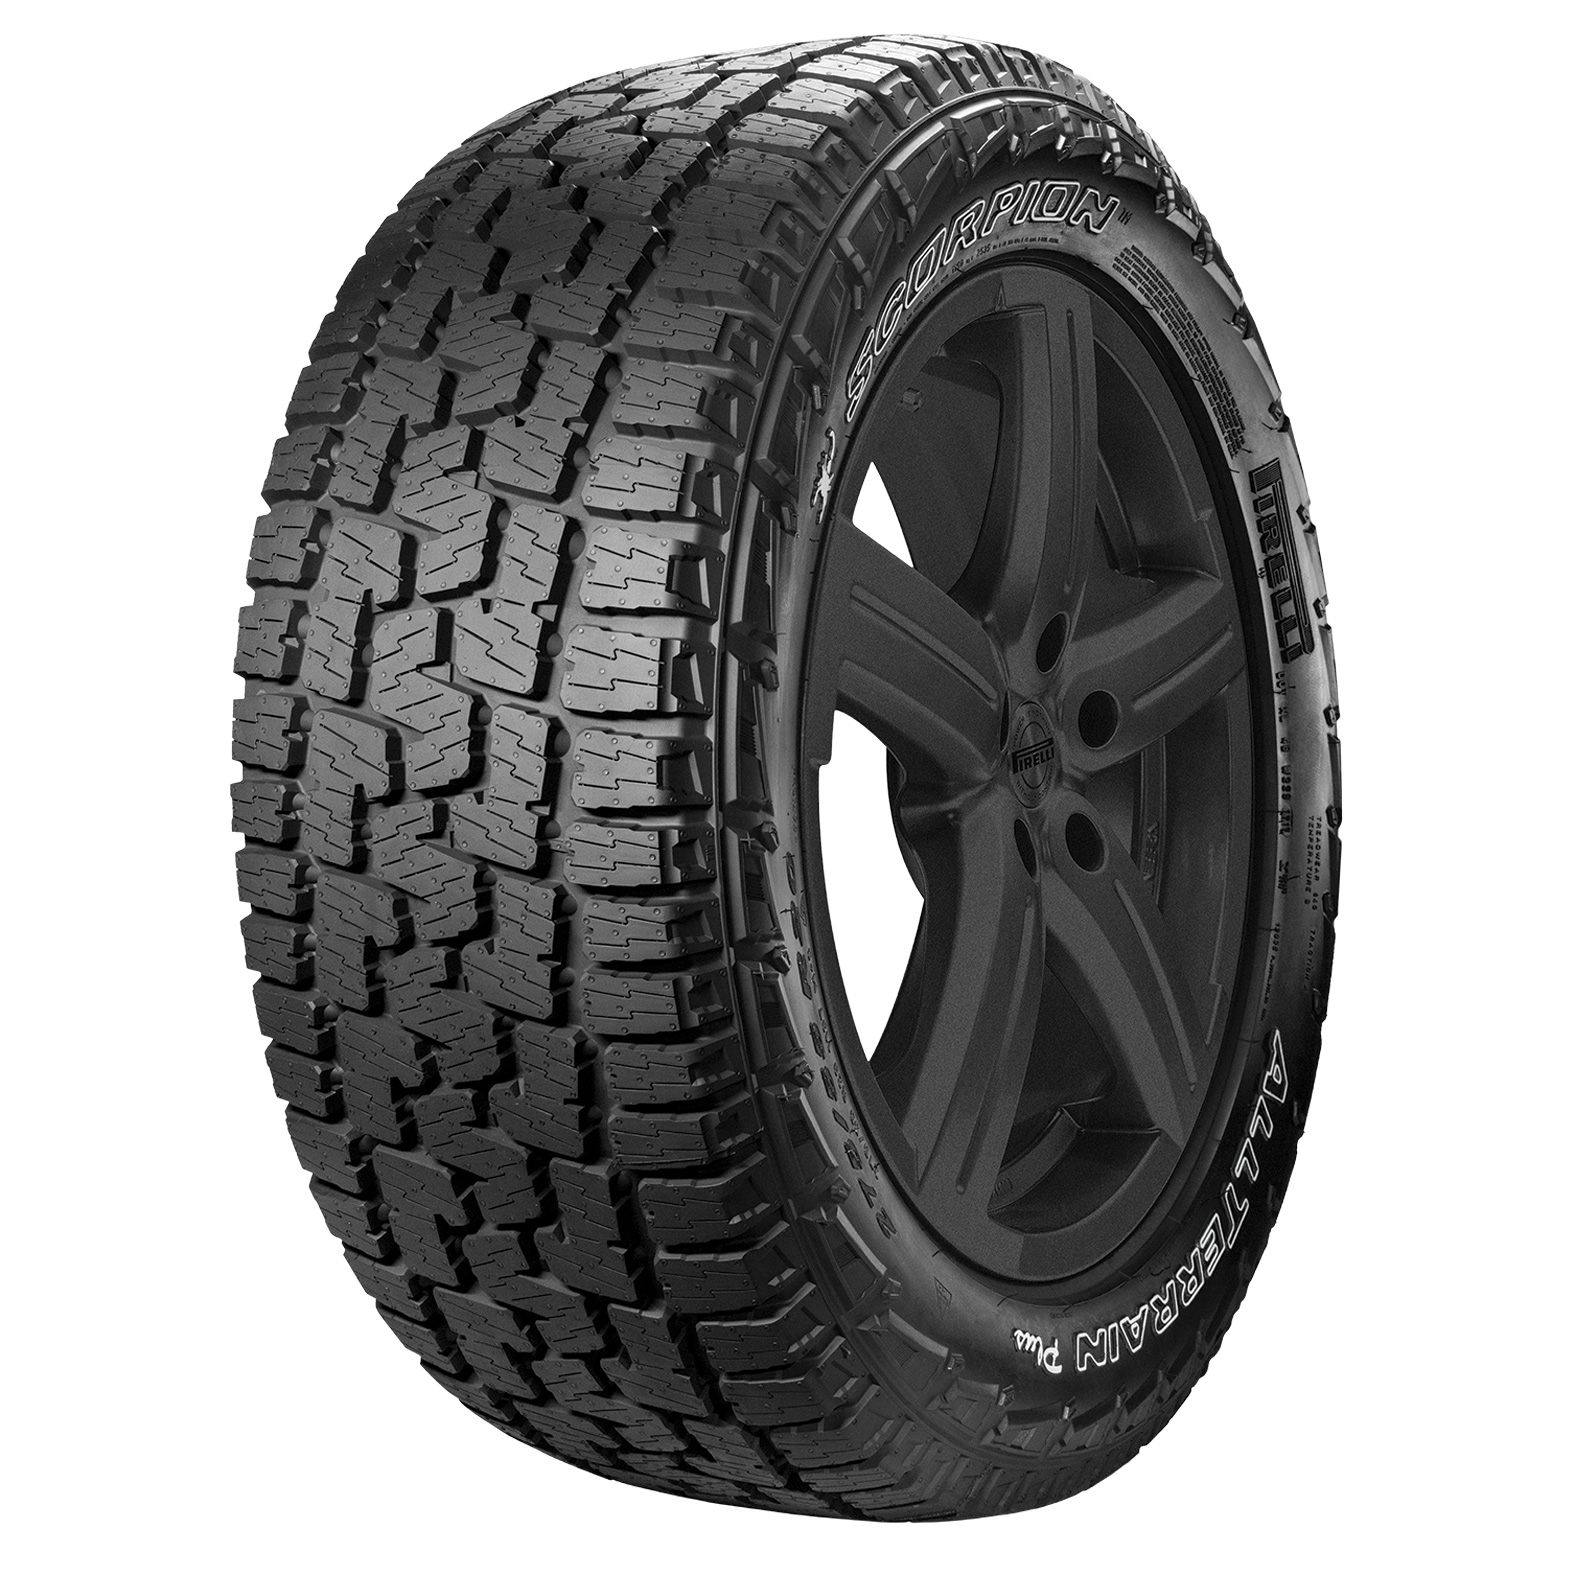 Pirelli Scorpion All Terrain Plus tire - angle